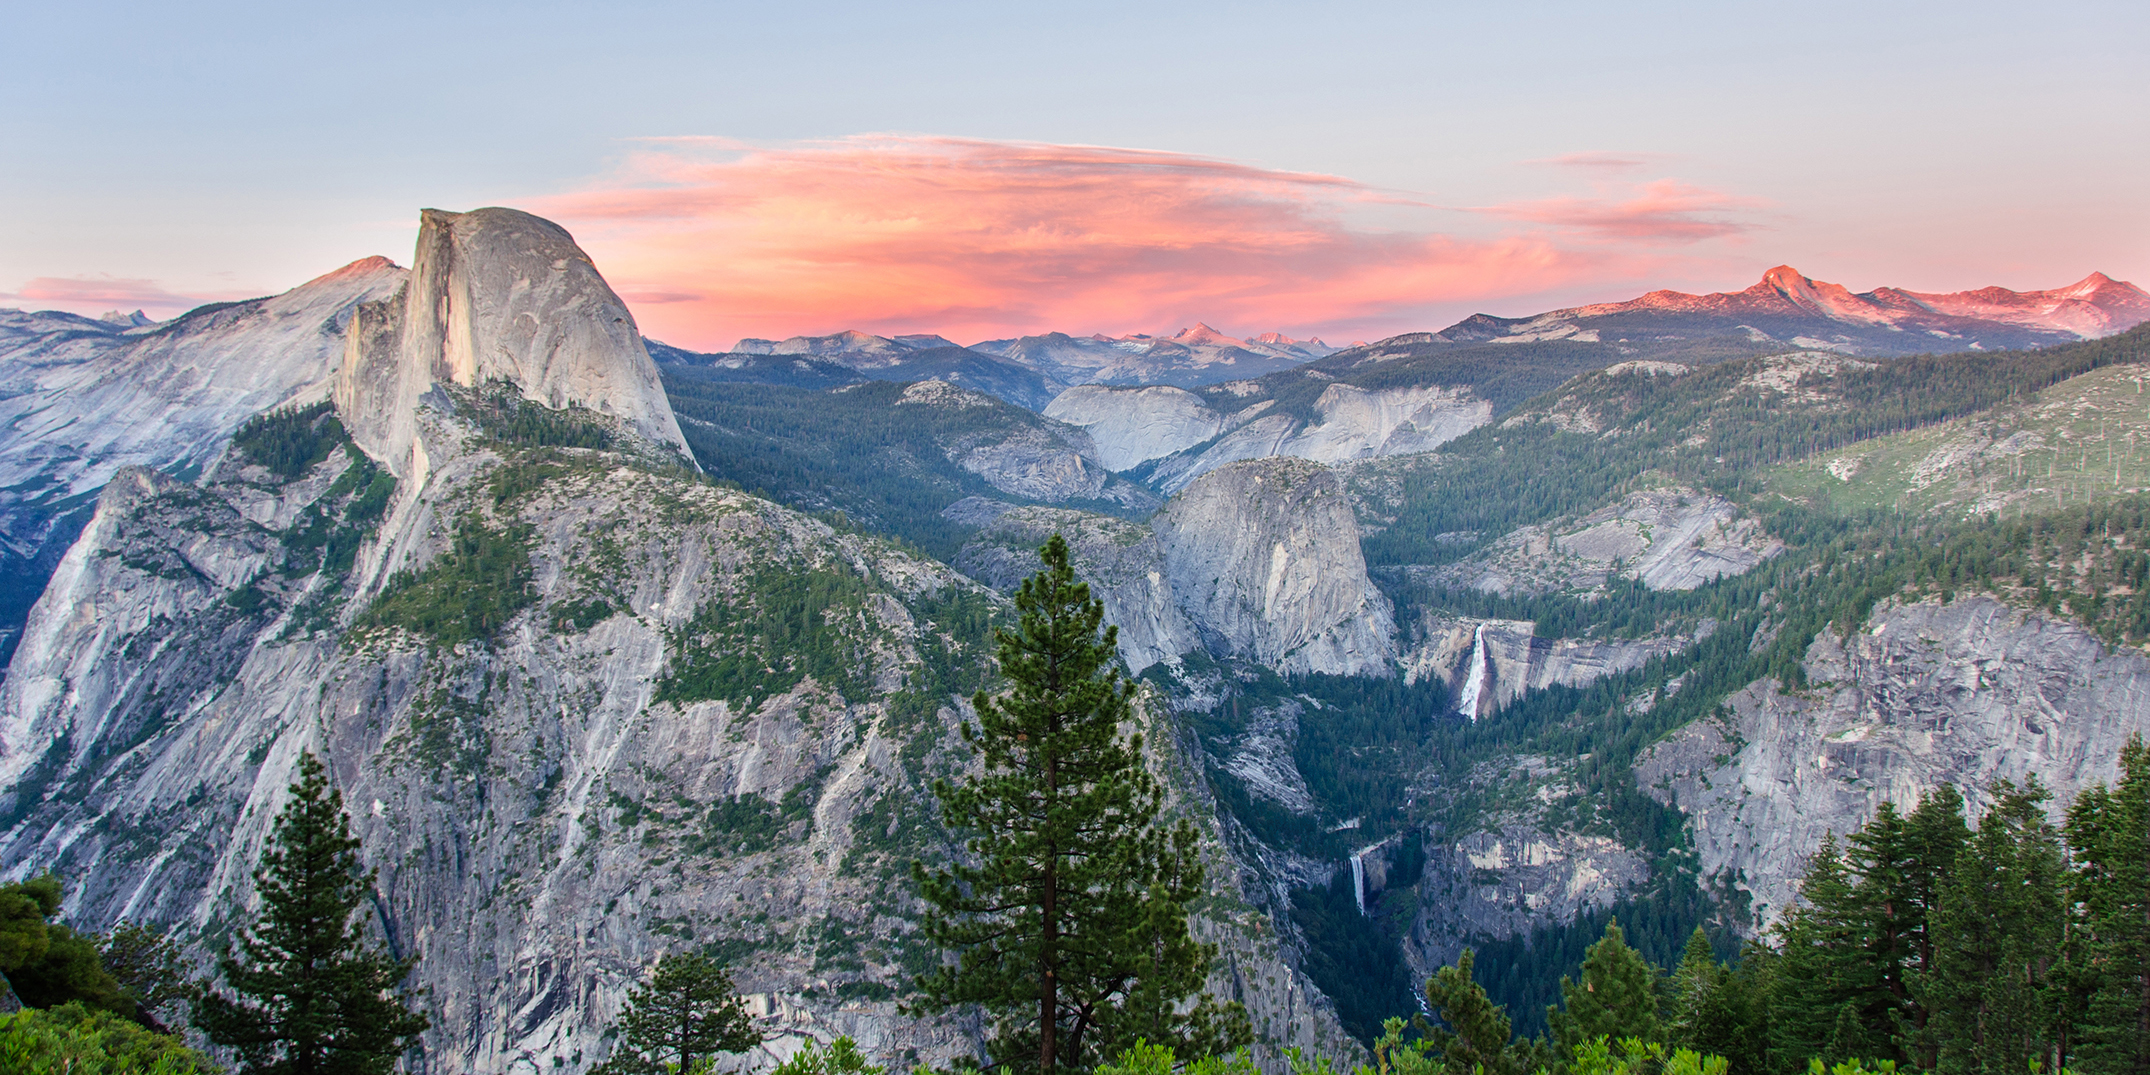 insider tips for visiting top national parks in the west | via